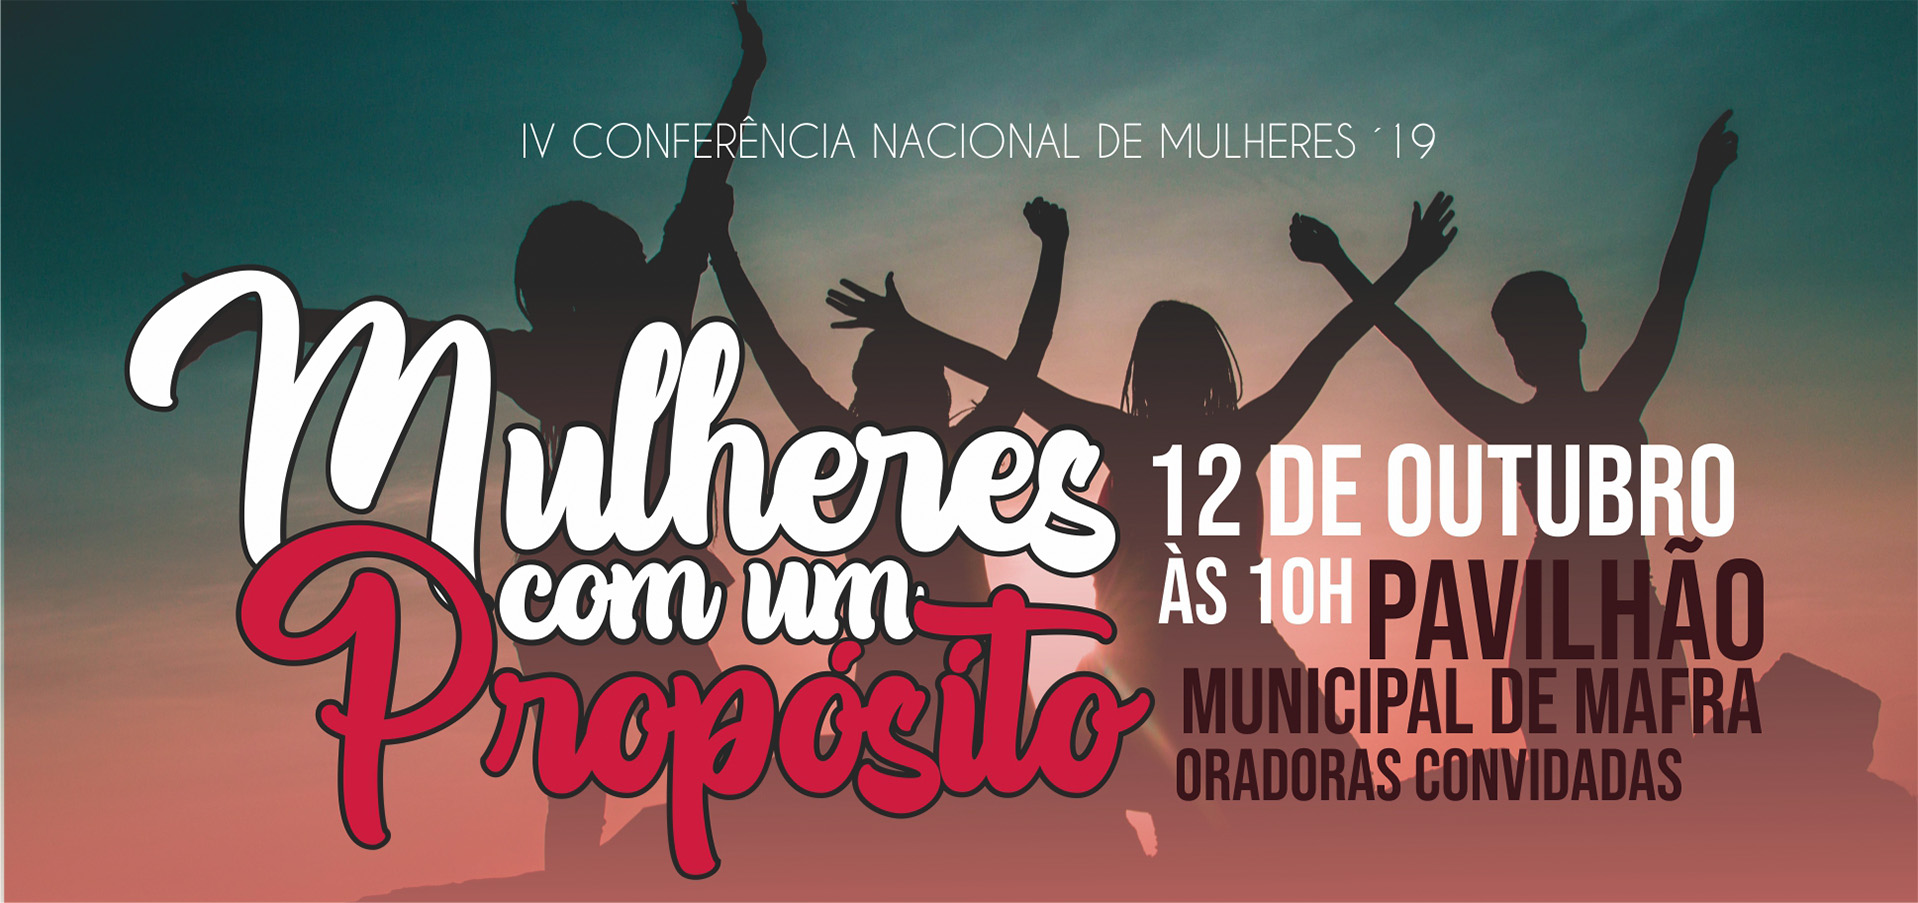 Banner_Conf_mulheres